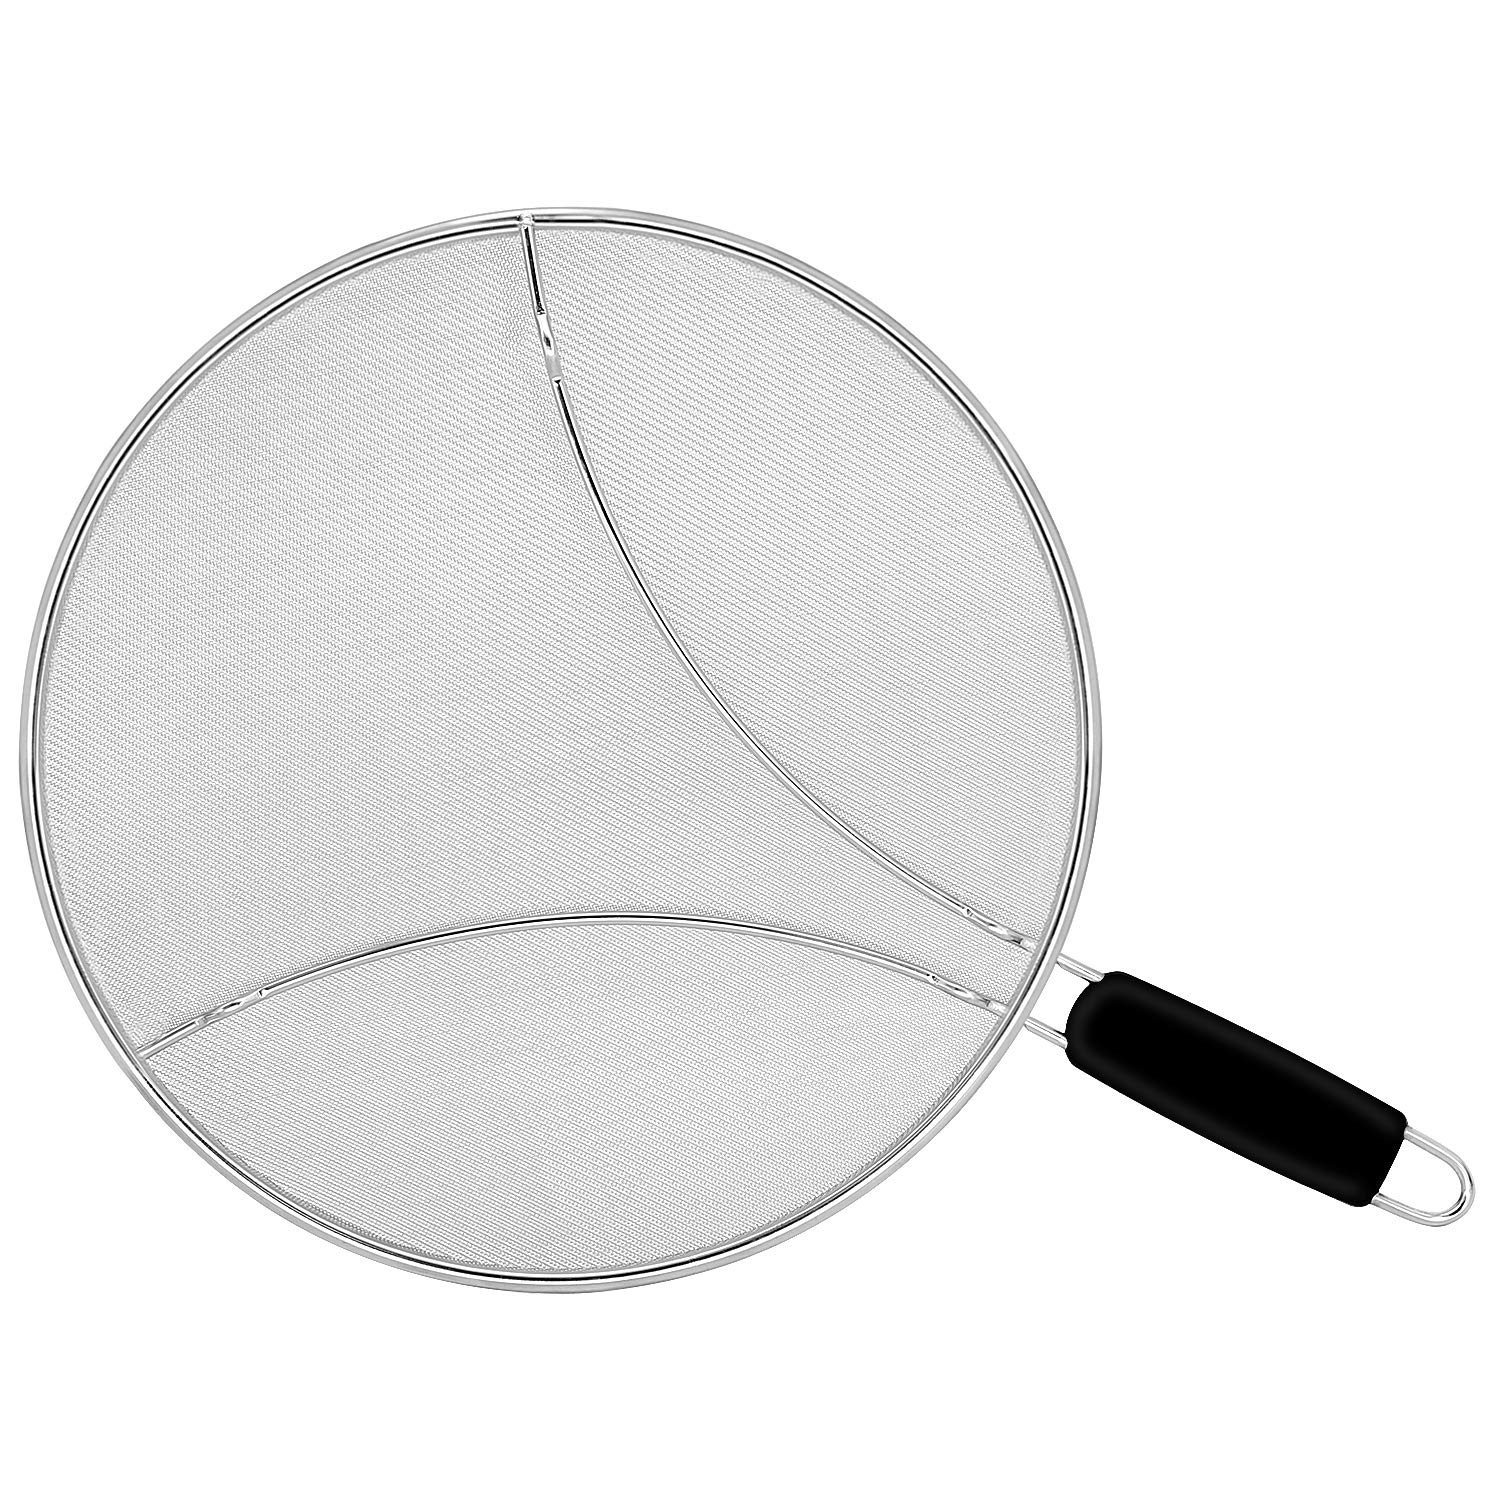 "Oil/Grease Splatter Screen for Fry Pan 13"". Hot Oil Splash Guard, Prevent and Protects Skin from Burns. Splatter Guard for Stove Cooking Keeps Kitchen Clean Stainless Steel Iron Skillet Lid"